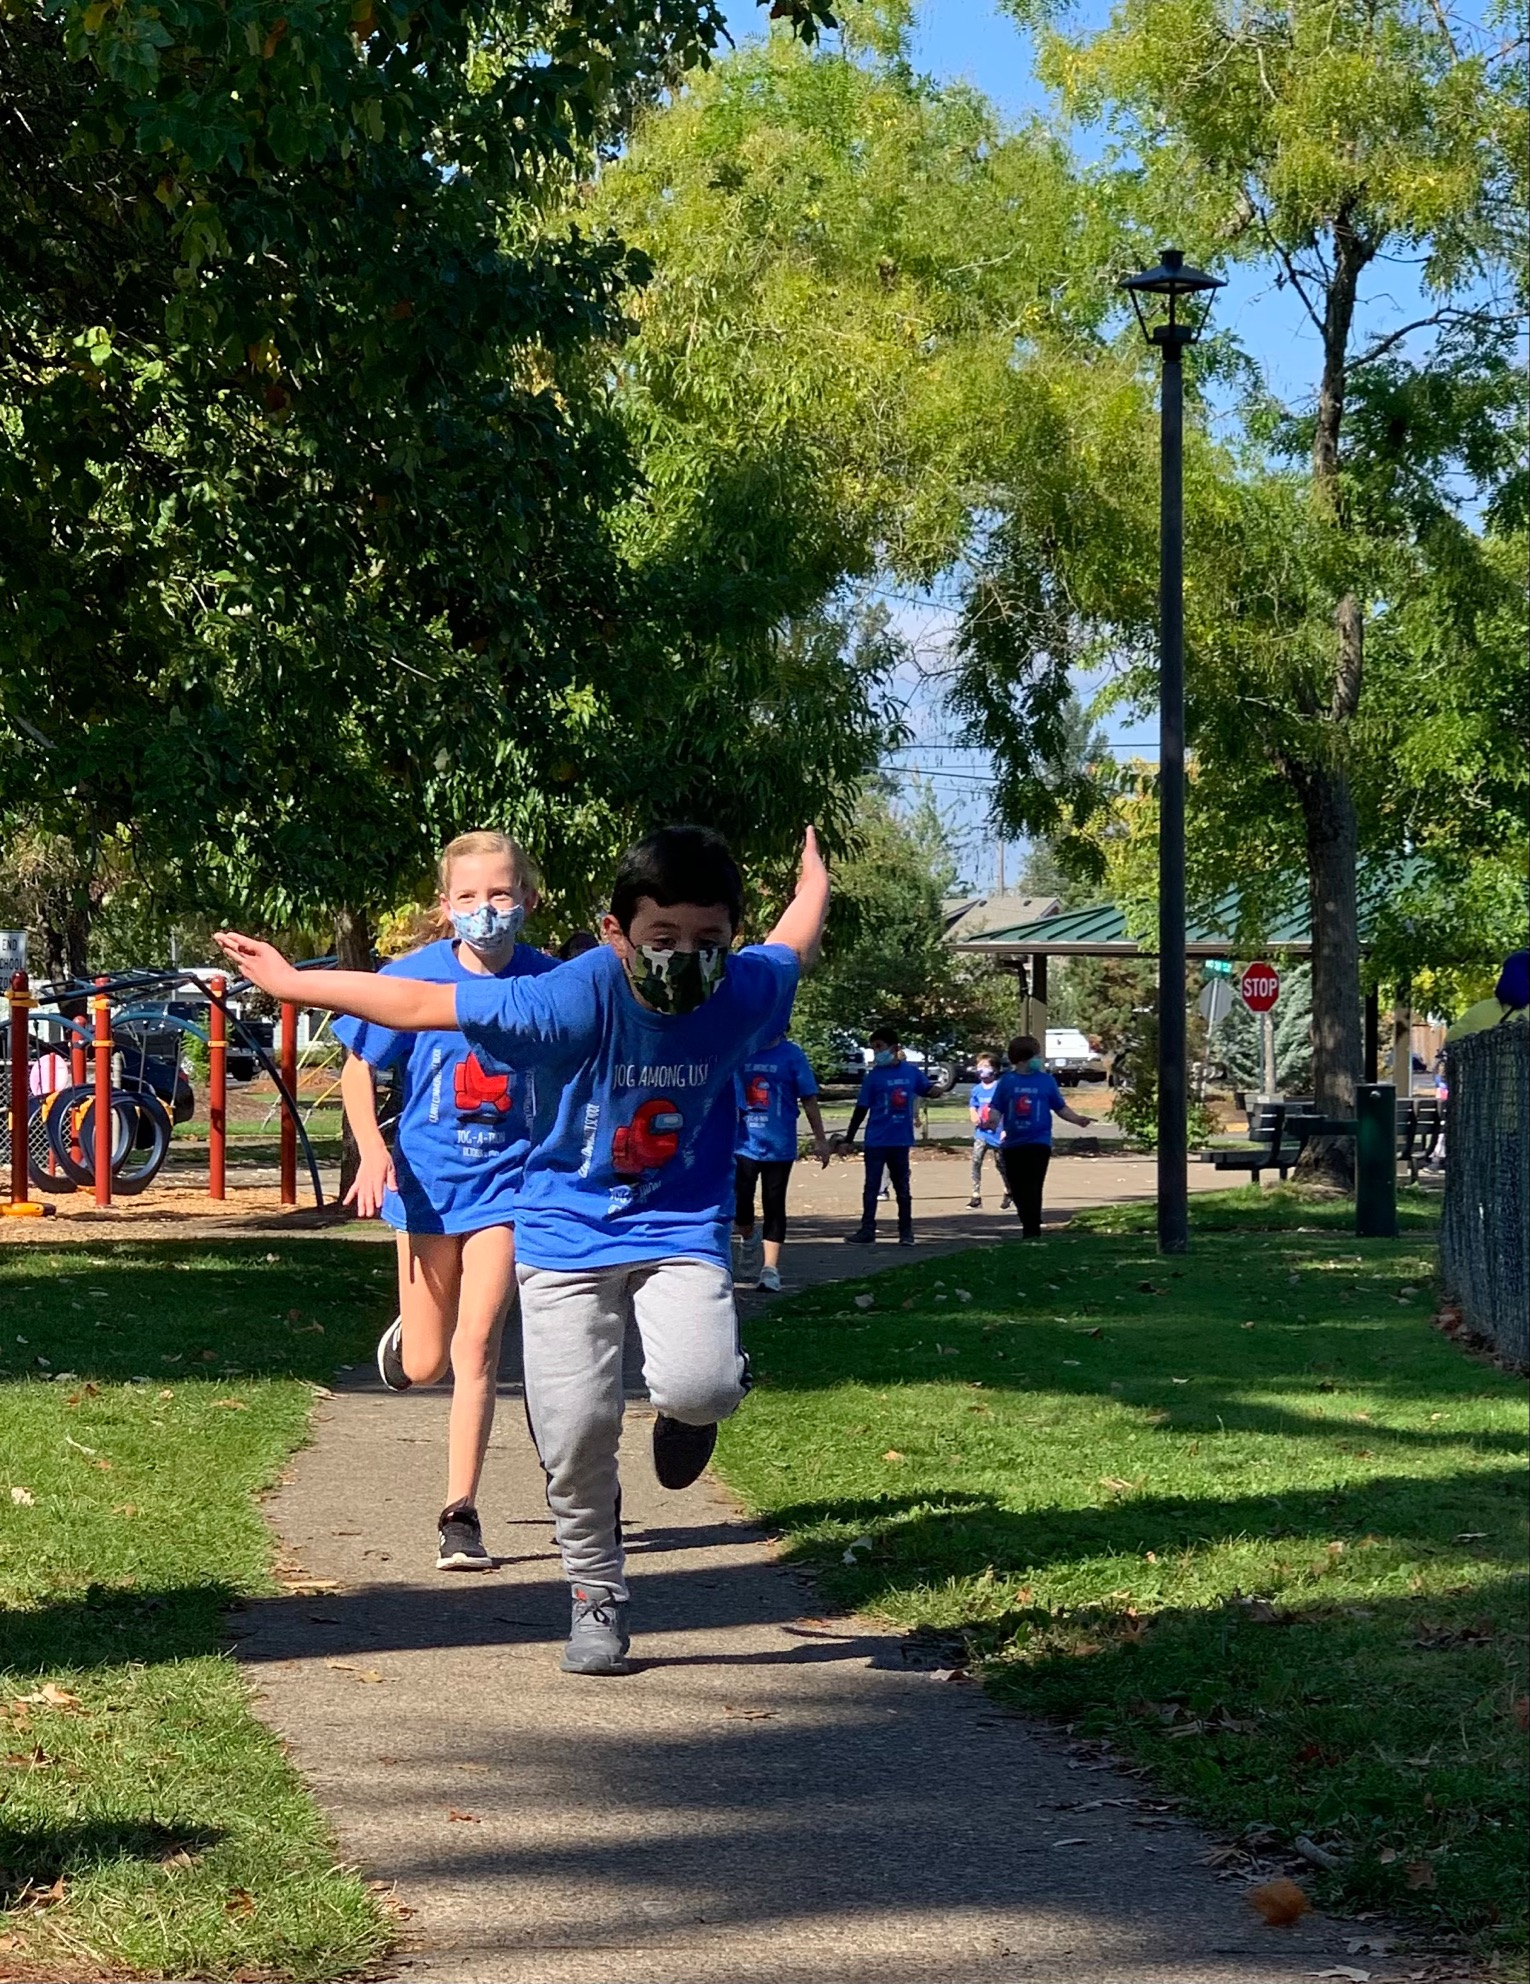 STUDENT PARTICPATING IN JOG-A-THON